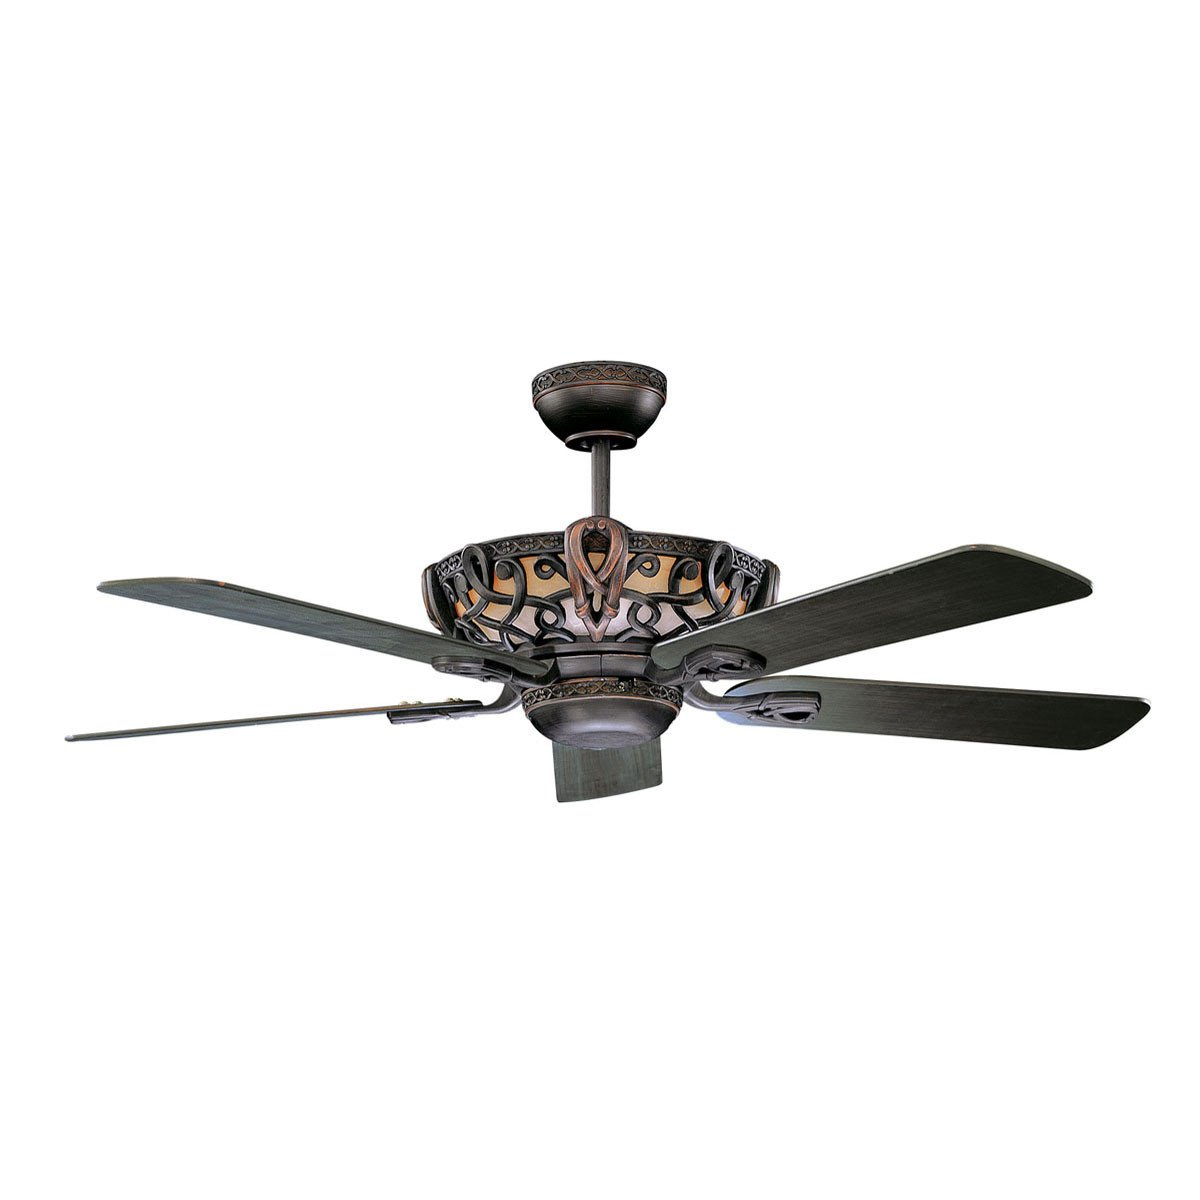 "Concord Fans 52"" Unique Aracruz Oil Rubbed Bronze Ceiling Fan with Up-Light Kit"